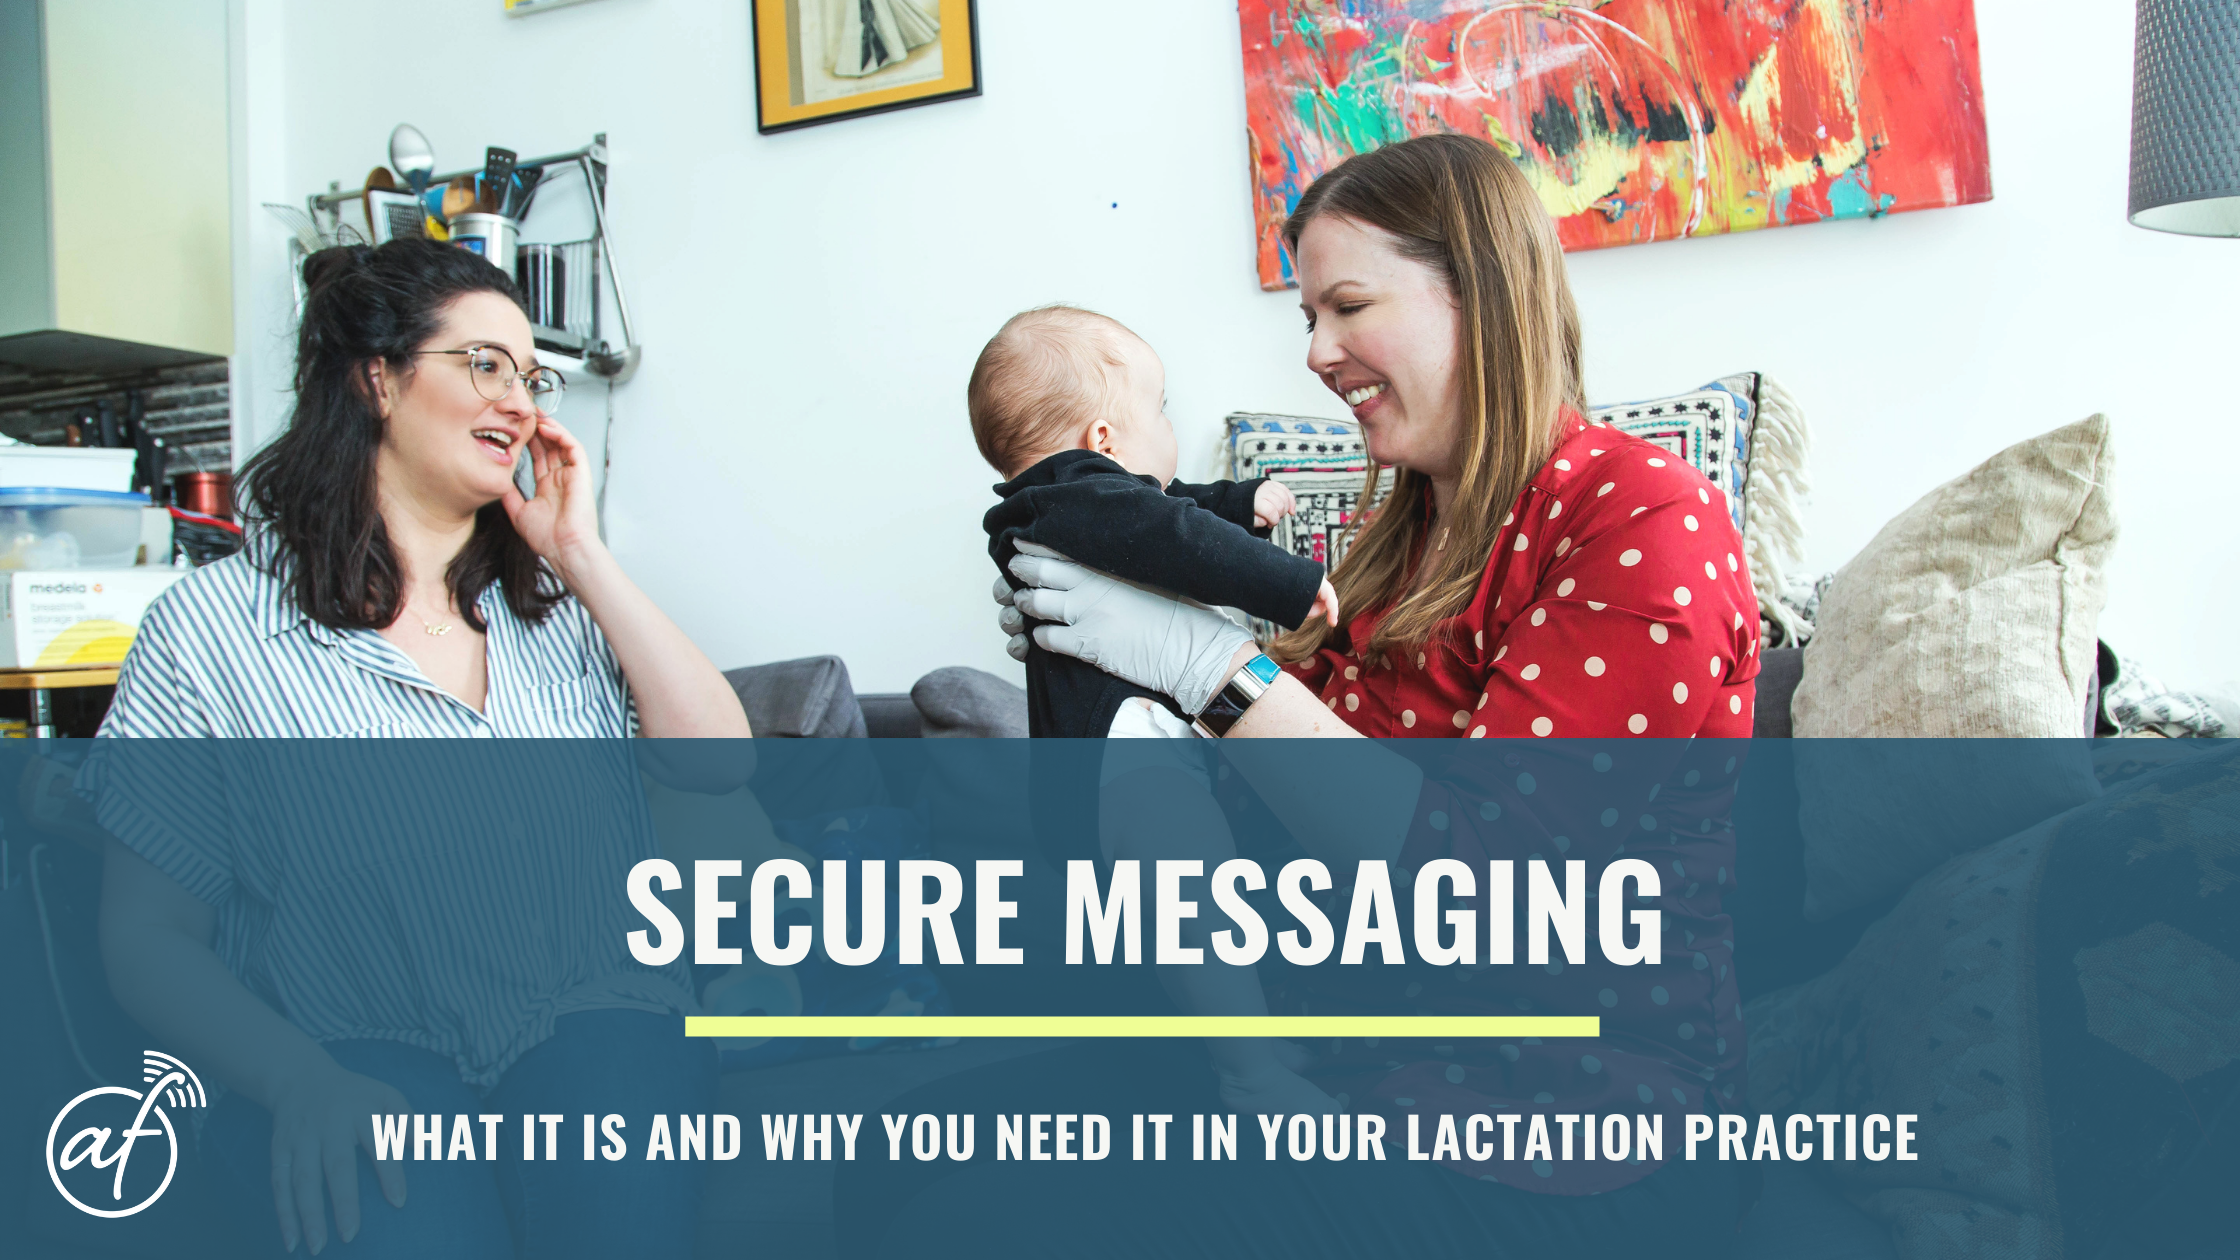 Secure messaging for IBCLC lactation private practice for HIPAA, GDPR, PIPEDA, privacy, healthcare